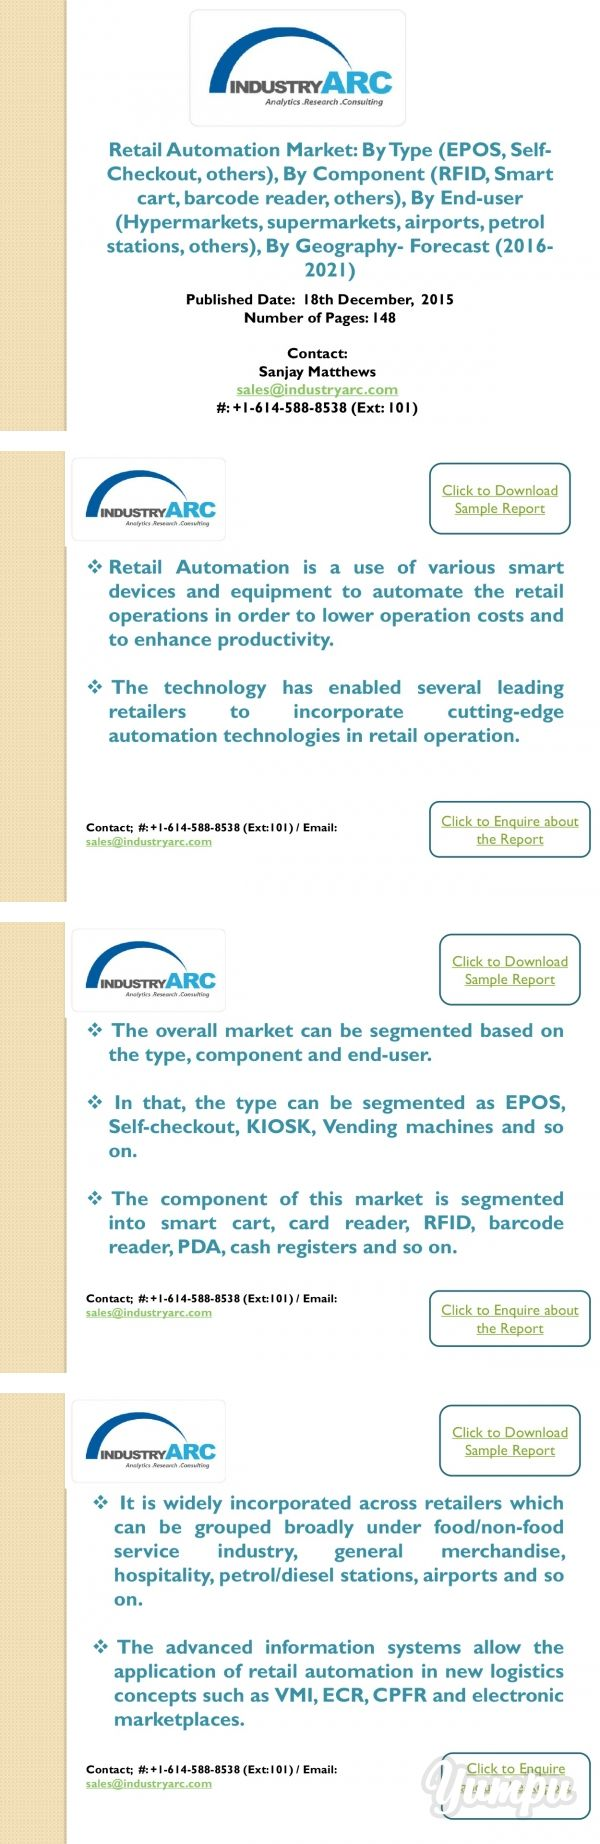 Retail Automation Market Recent Study suggests increased revenue generation owing to increased range of applications with lower operation costs - Magazine with 12 pages: Retail automation refers to use of various smart devices and equipment to automate the retail operations in order to lower operation costs and to enhance productivity.